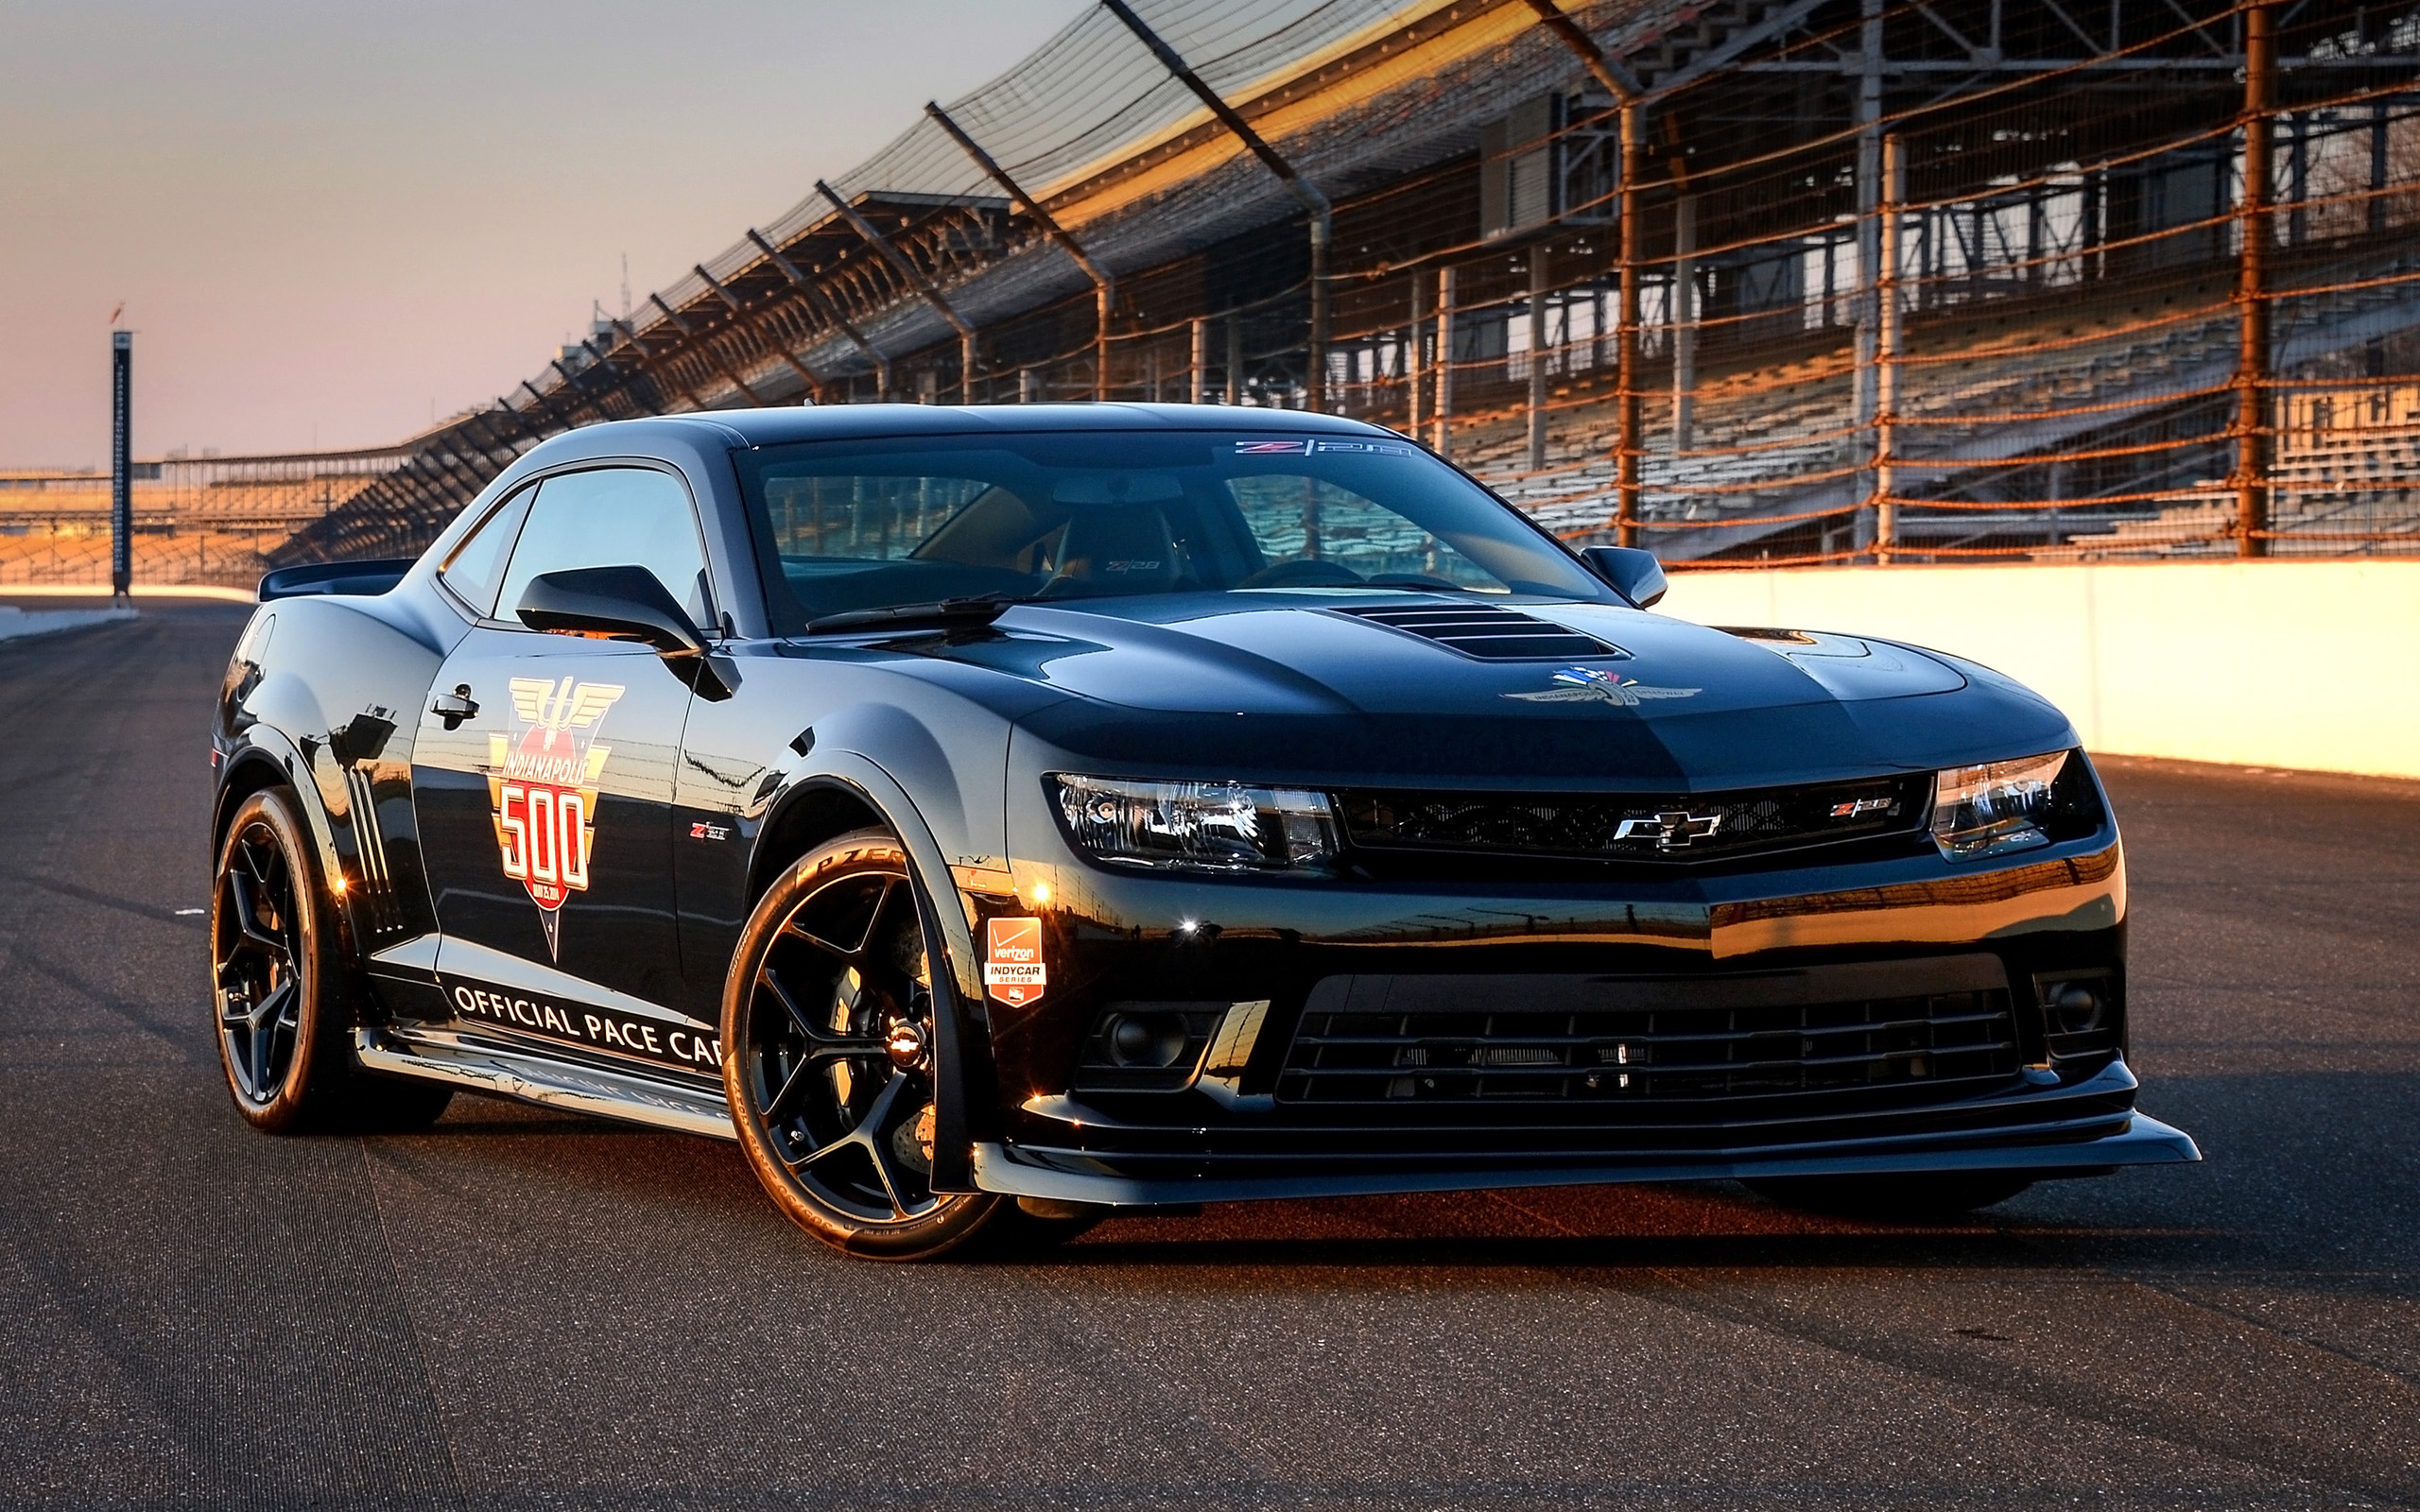 2014 chevrolet camaro z28 indy 500 pace car wallpaper hd - Camaro z28 ...